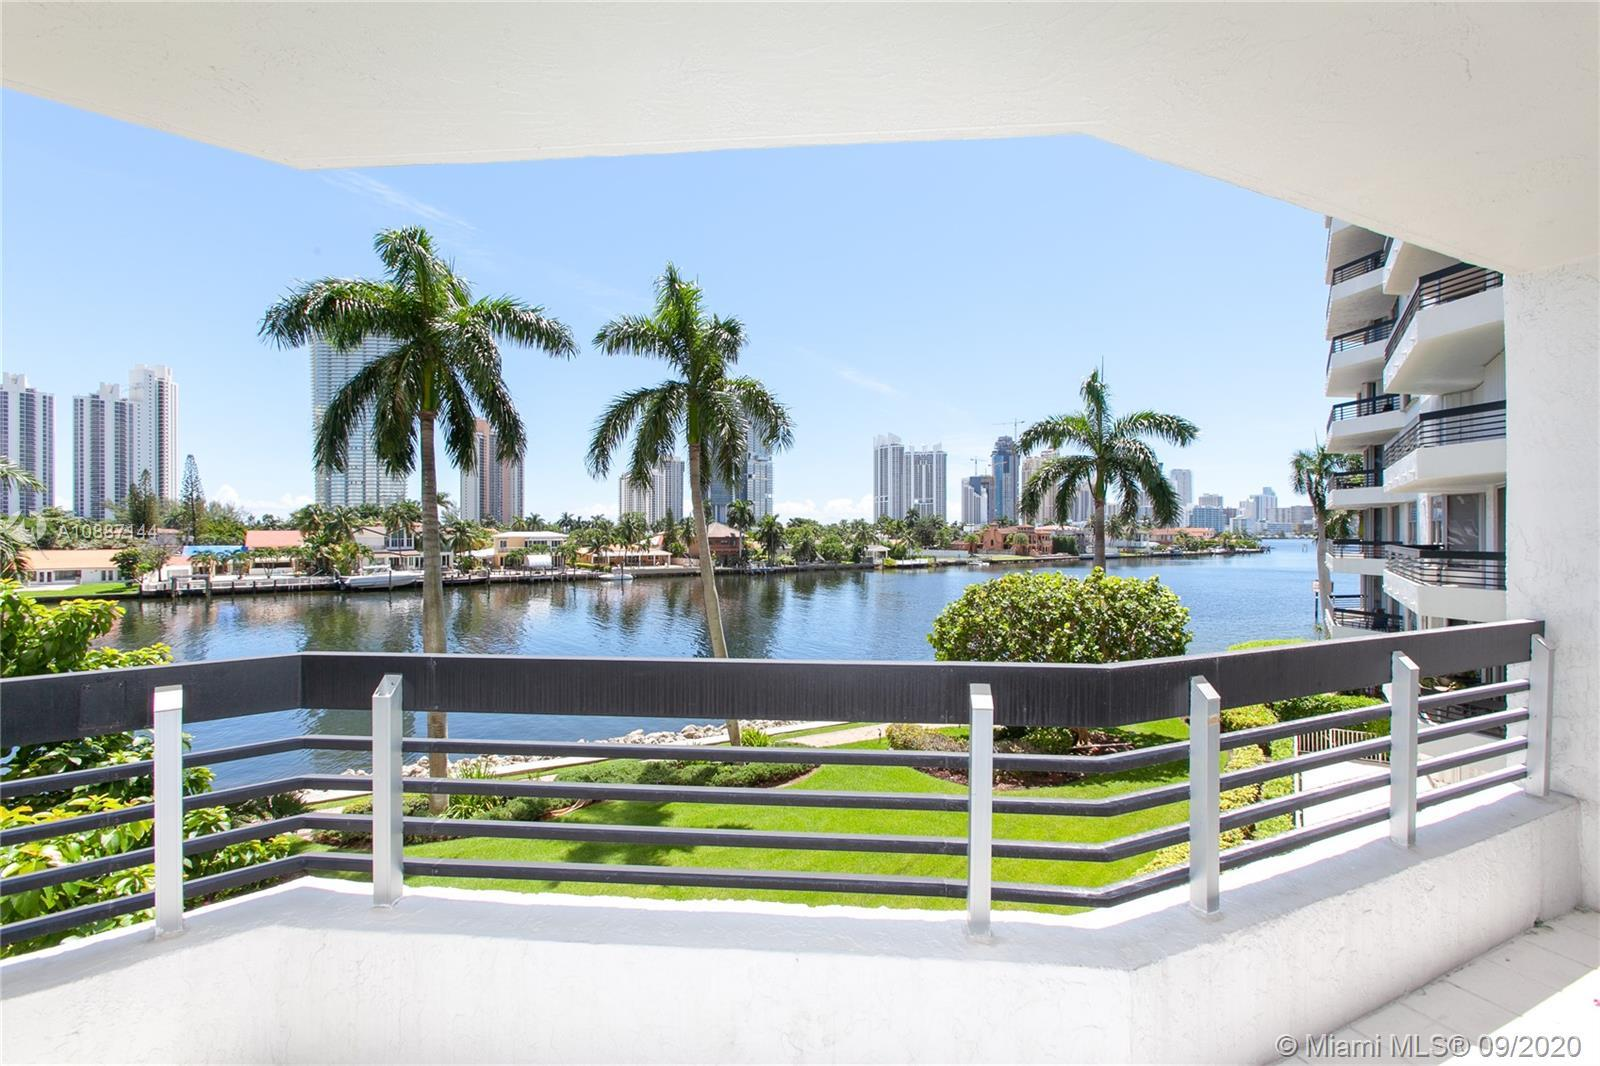 BREATHTAKING INTRACOASTAL AND WATER VIEWS FROM PRESTIGIOUS MYSTIC POINTE CONDO IN THE HEART OF AVENT